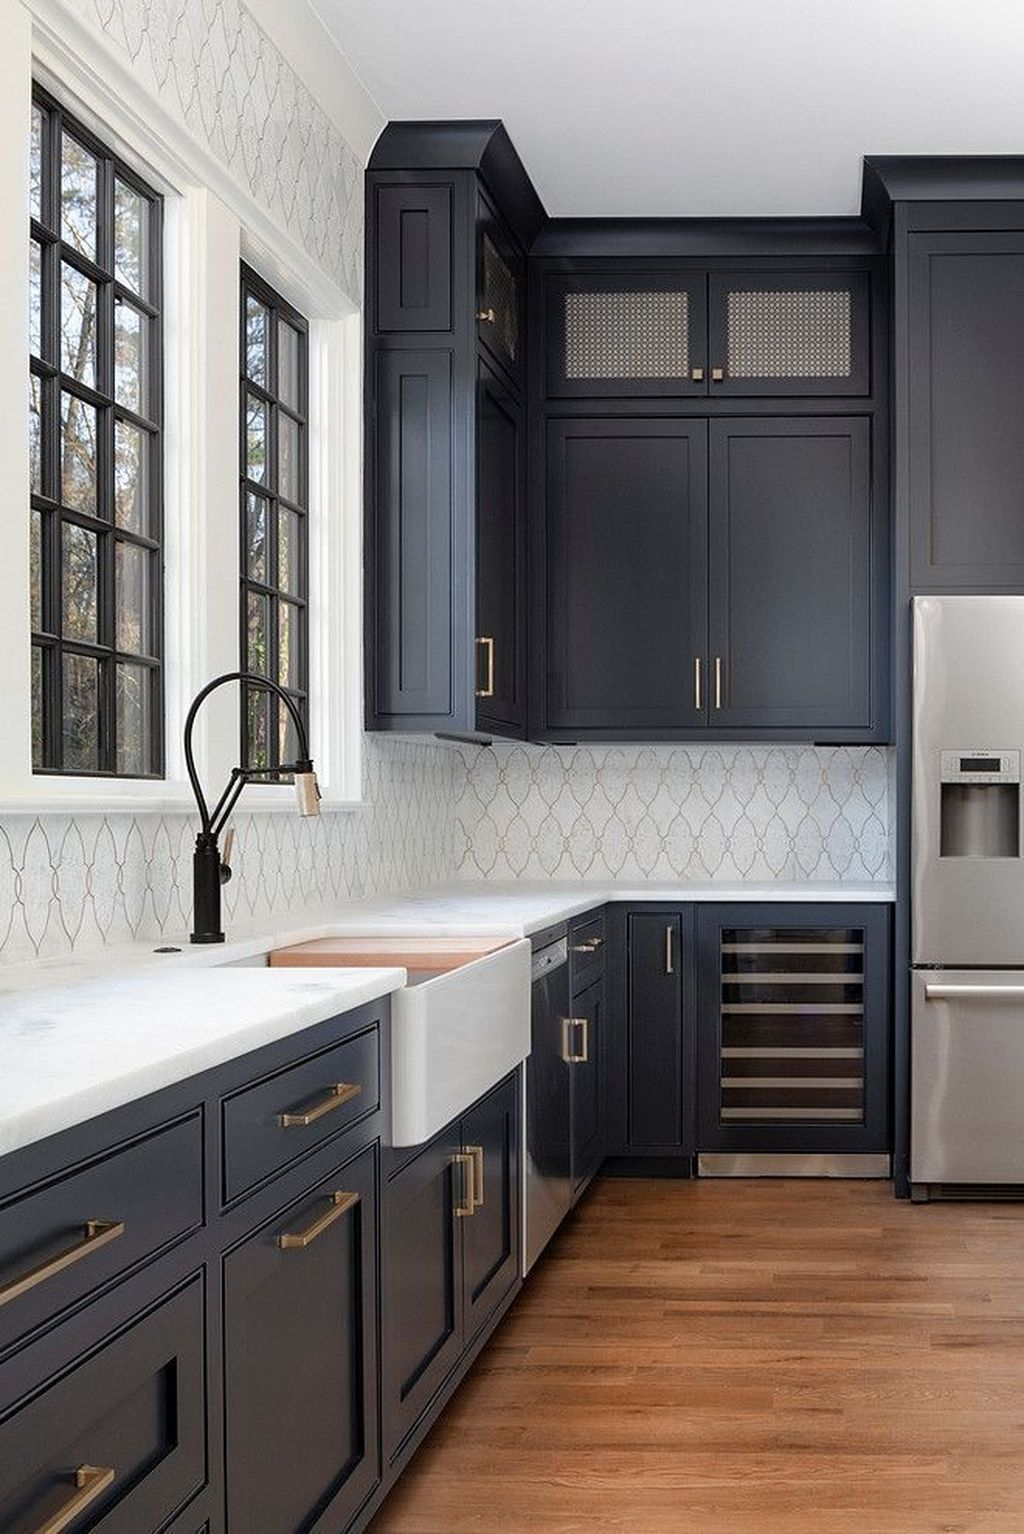 Superb Kitchen Design Ideas That You Can Try 26